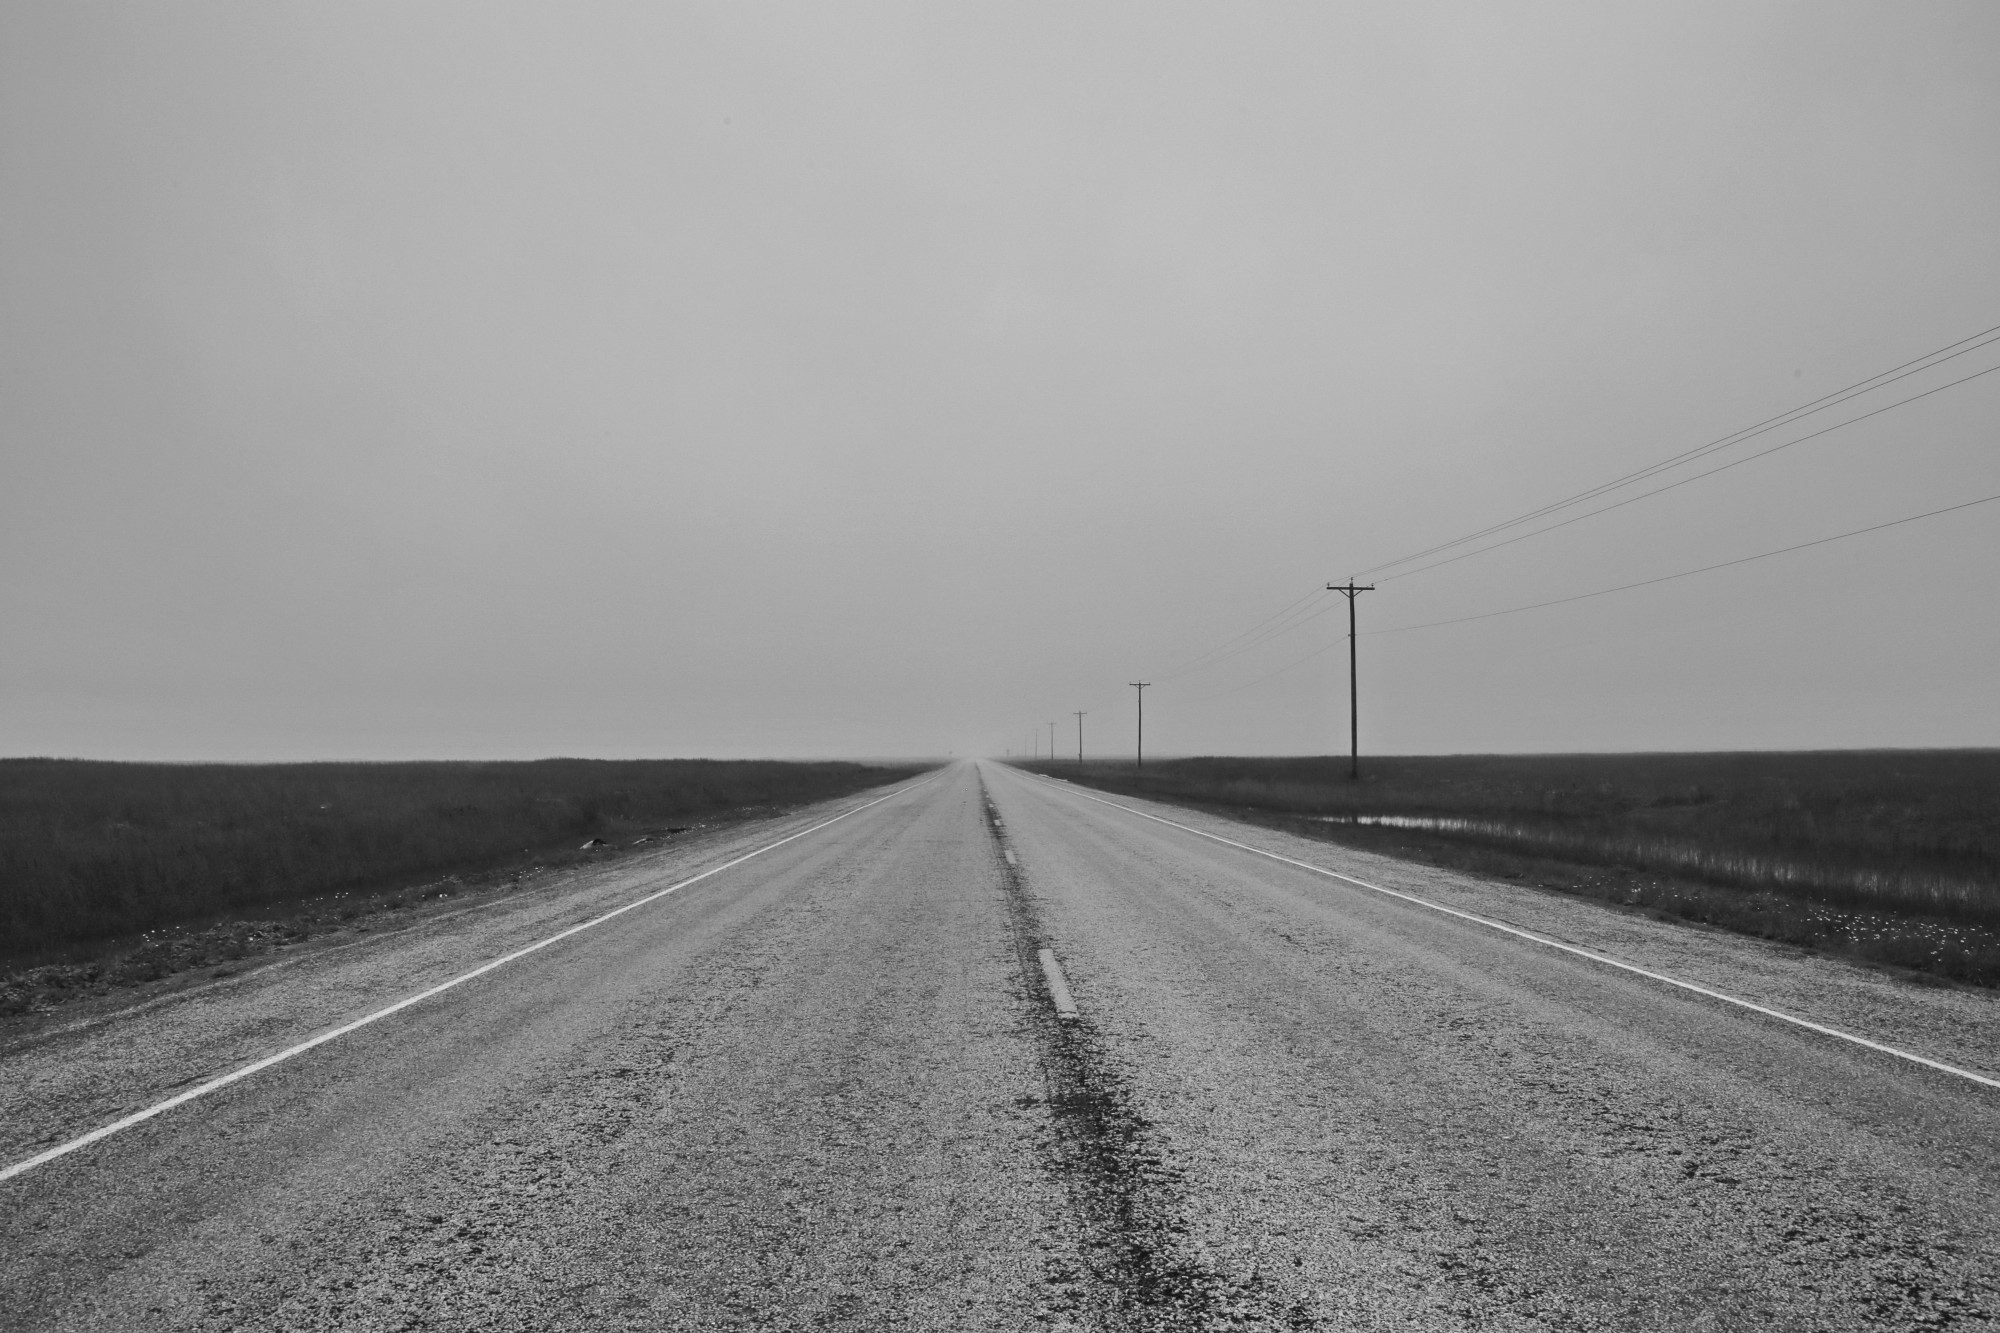 Road, surrounded by a flat terrain, heading off into the distance. Black and white photo.